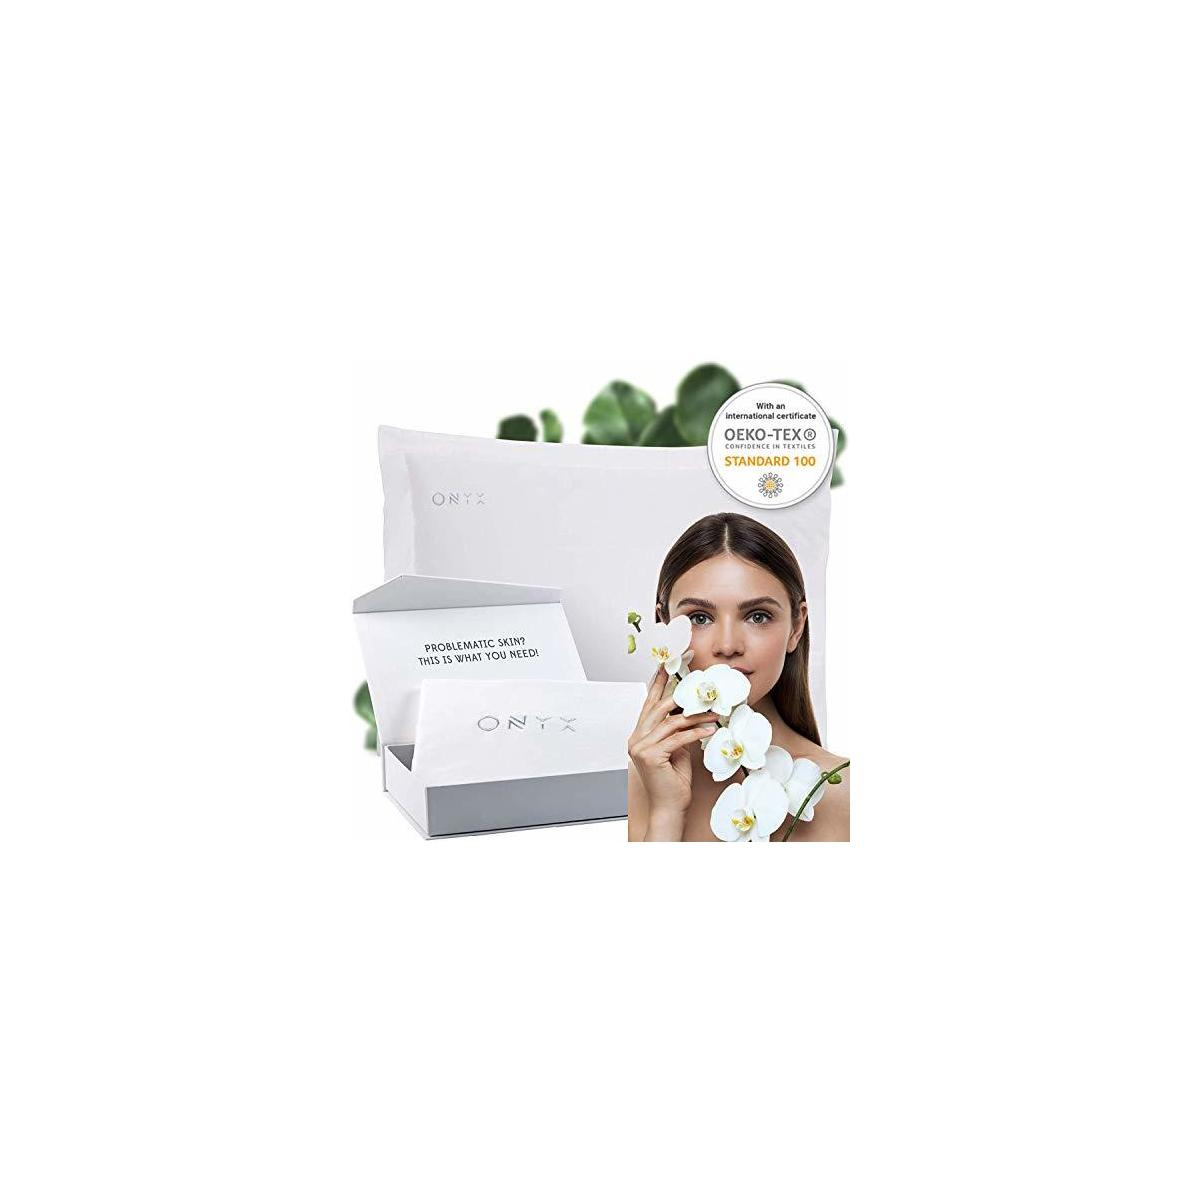 ONYX Zinc Skin Repair Treatment Pillowcase Natural Minerals,Works on Your Skin While Sleeping,Nature Healing Technology for Smooth Skin, Hair, Scalp, Acne,Seborrhea,Eczema, Forehead Wrinkles & More